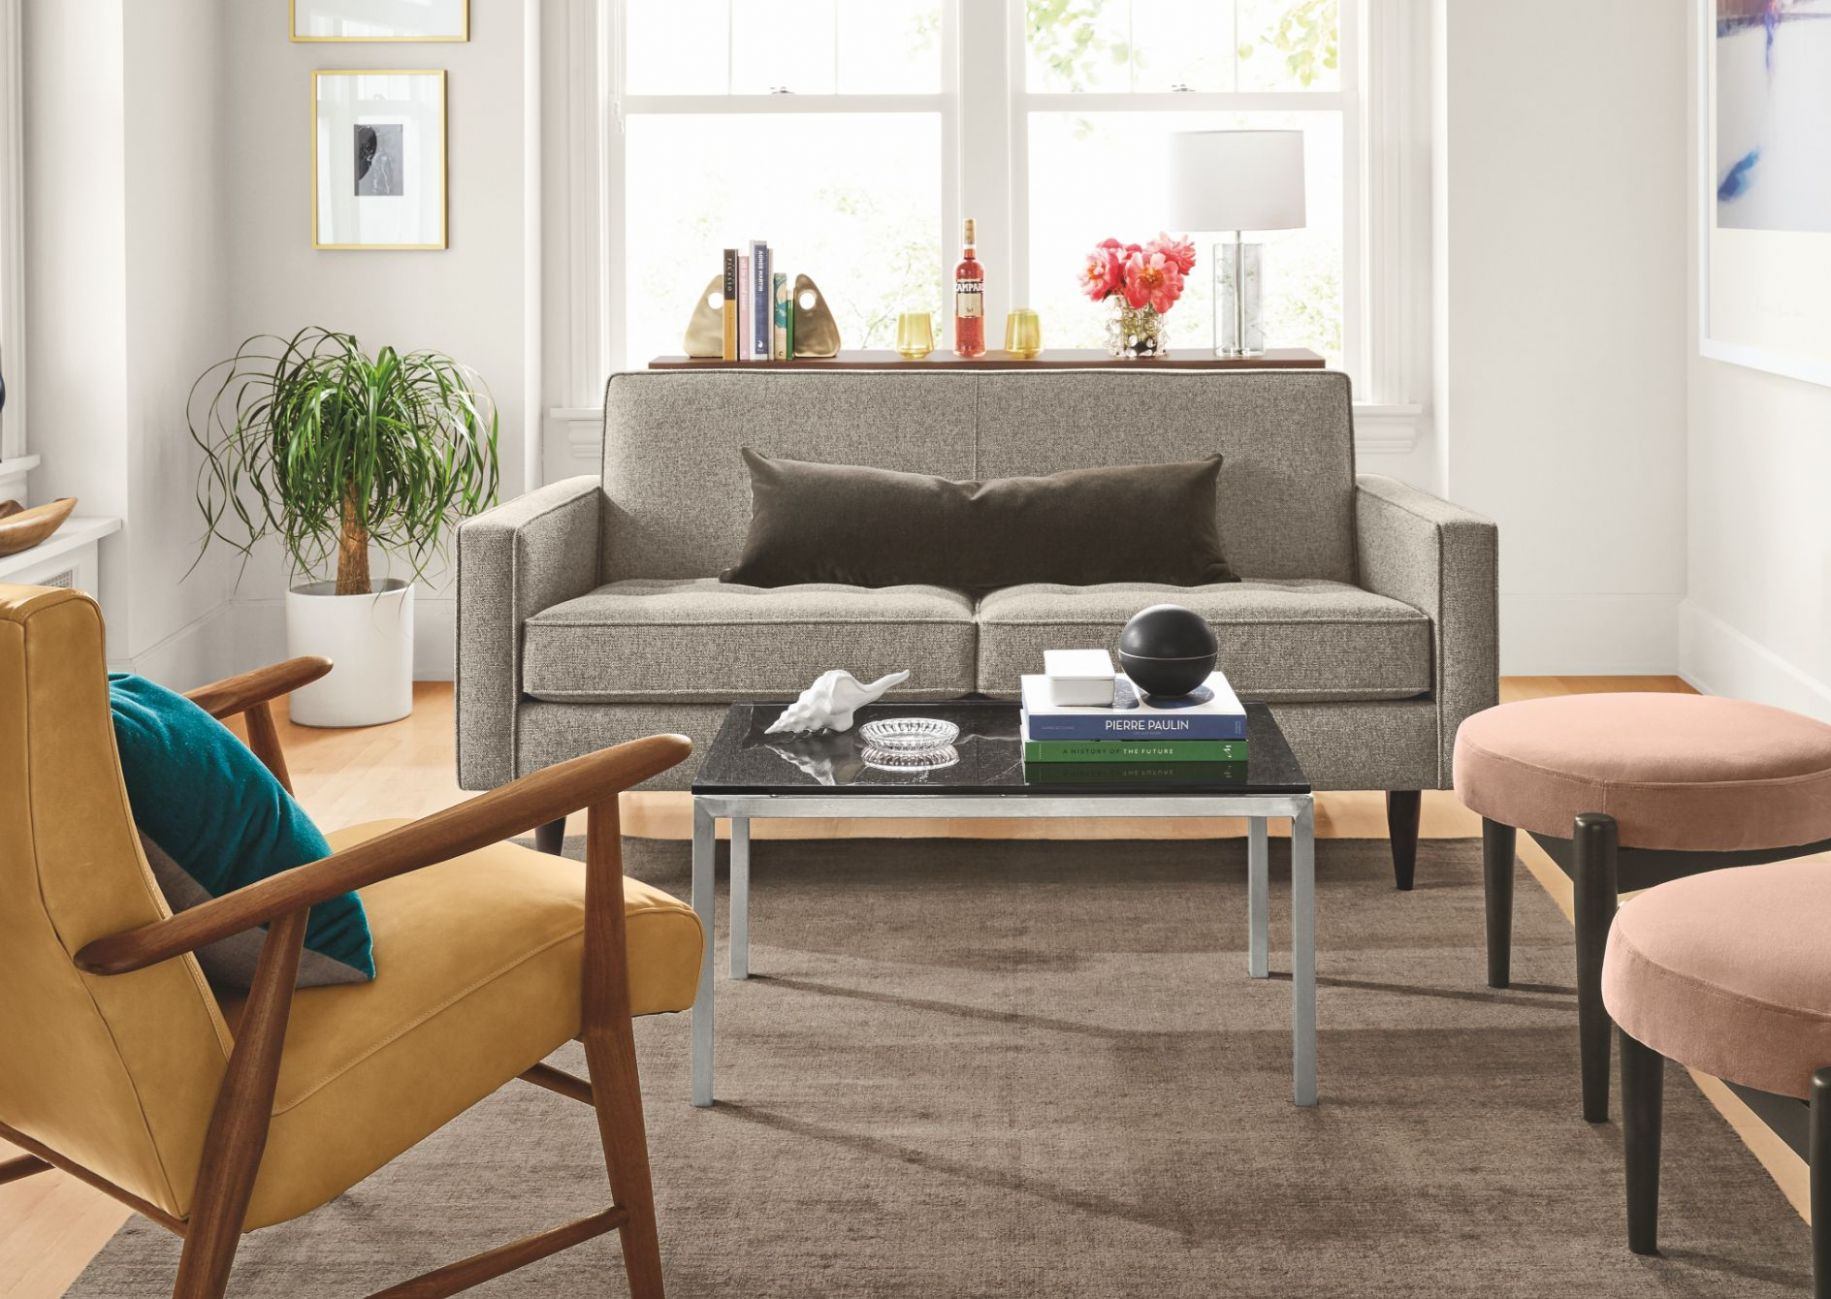 Seating Ideas for a Small Living Room - Ideas & Advice - Room & Board